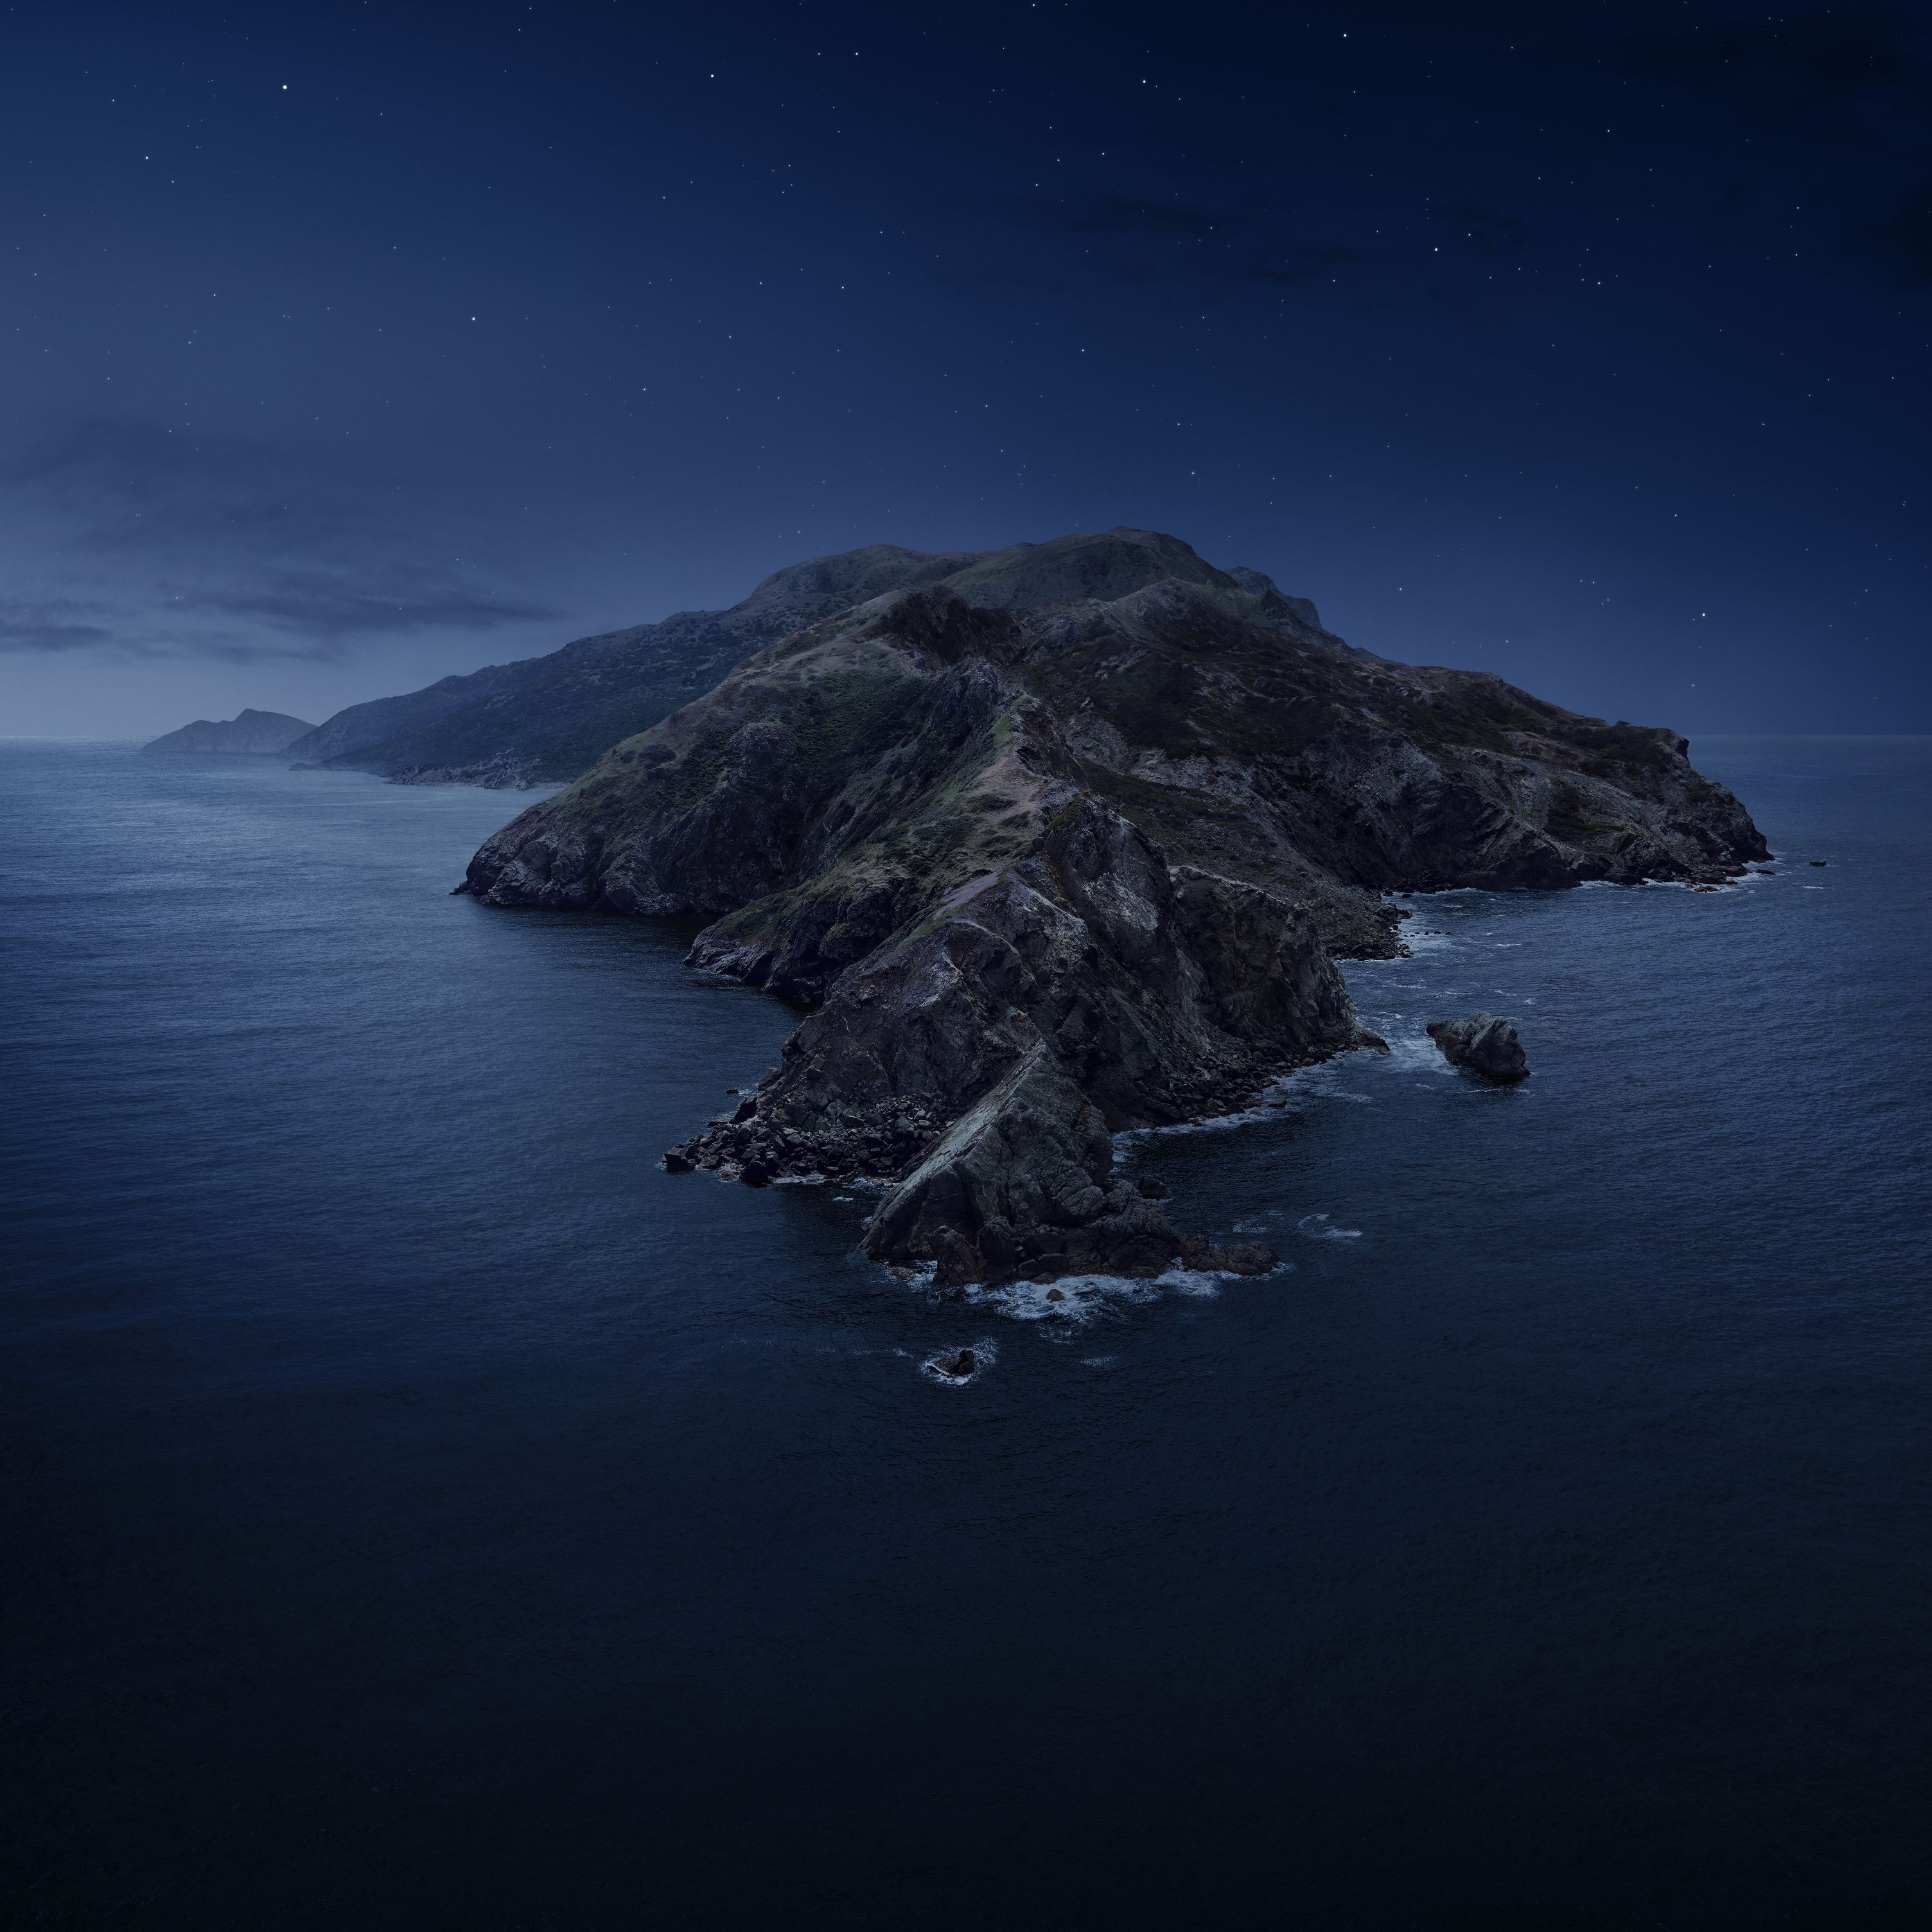 macOS Catalina Dark Mode wallpaper Sfondi, Sfondi iphone